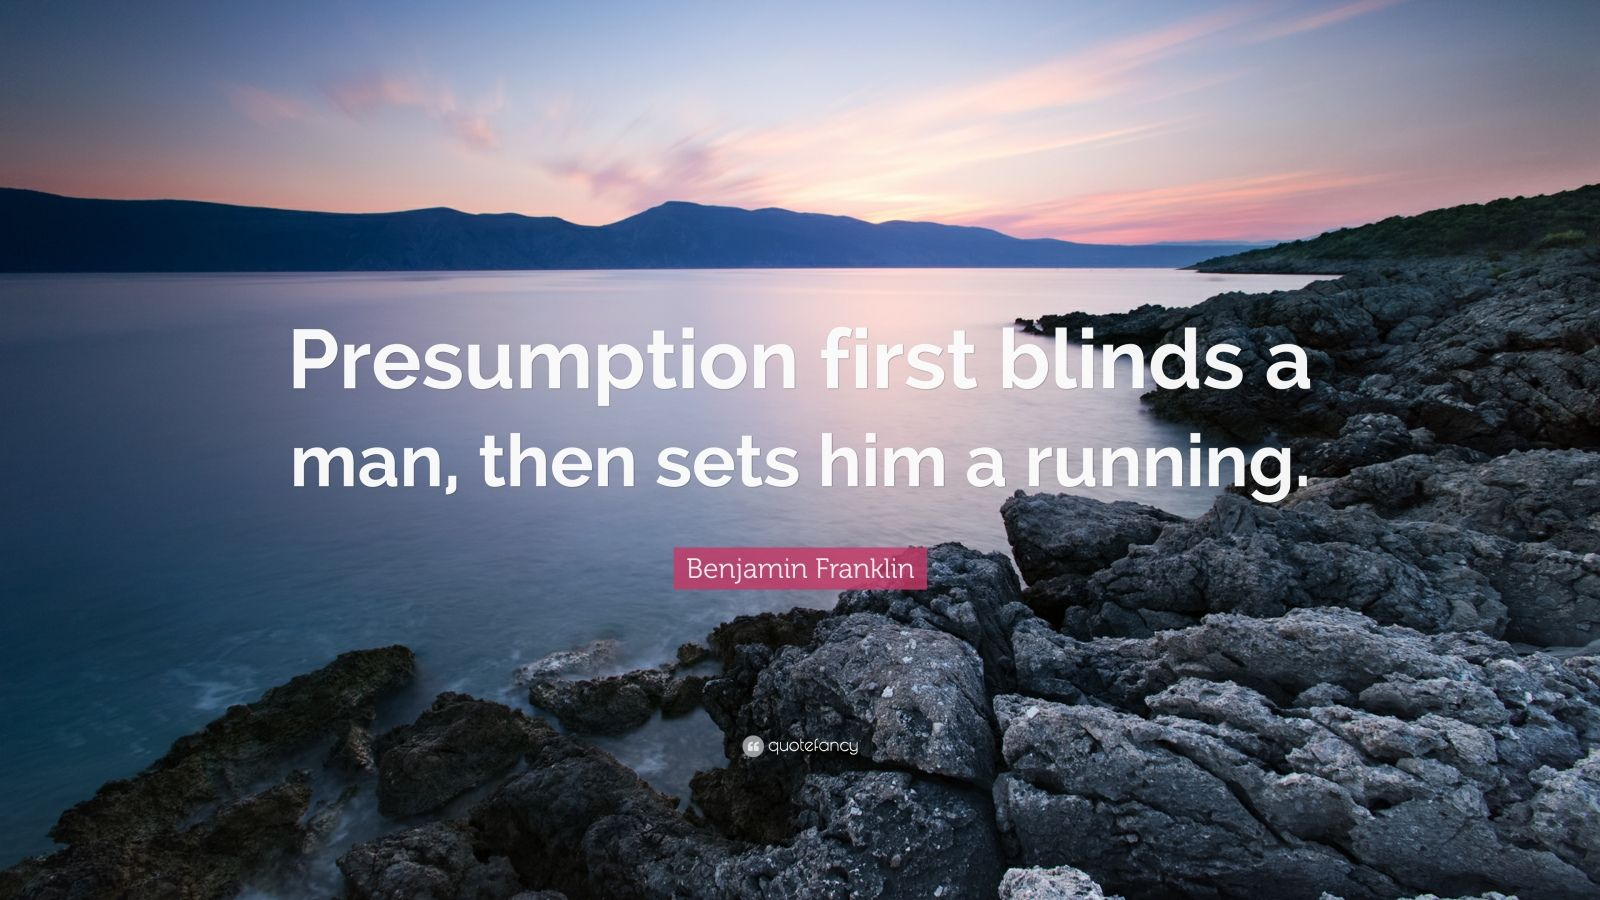 """Benjamin Franklin Quote: """"Presumption first blinds a man, then sets him a running."""""""